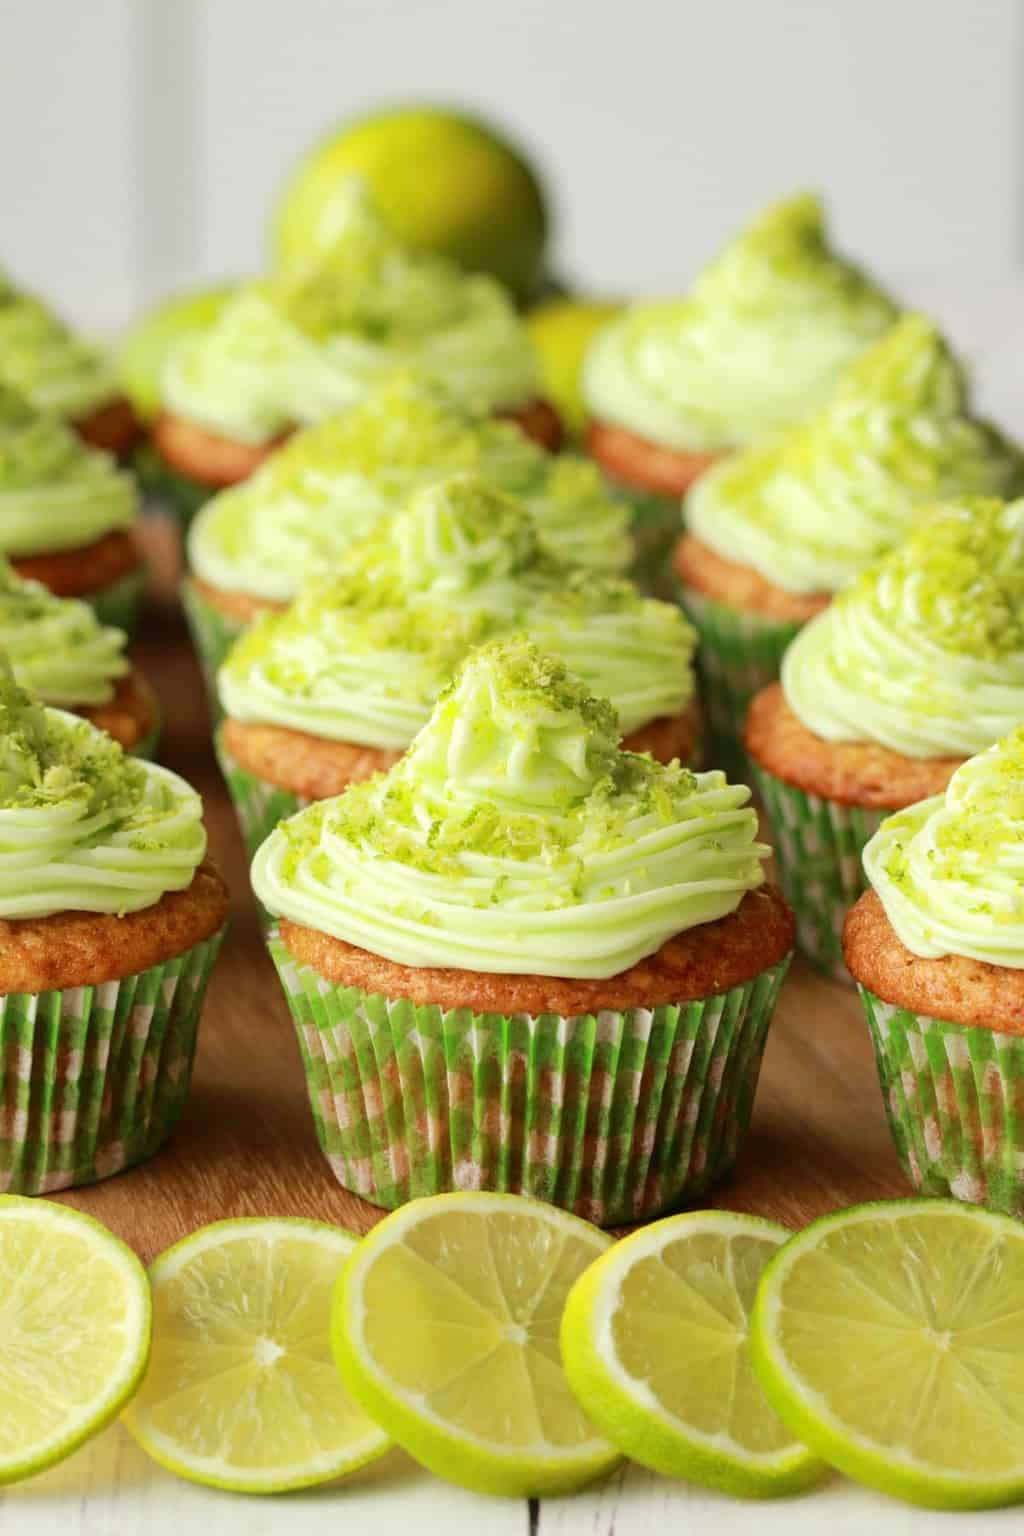 Vegan Key Lime Cupcakes on a wooden board with whole limes in the background and lime slices in the foreground